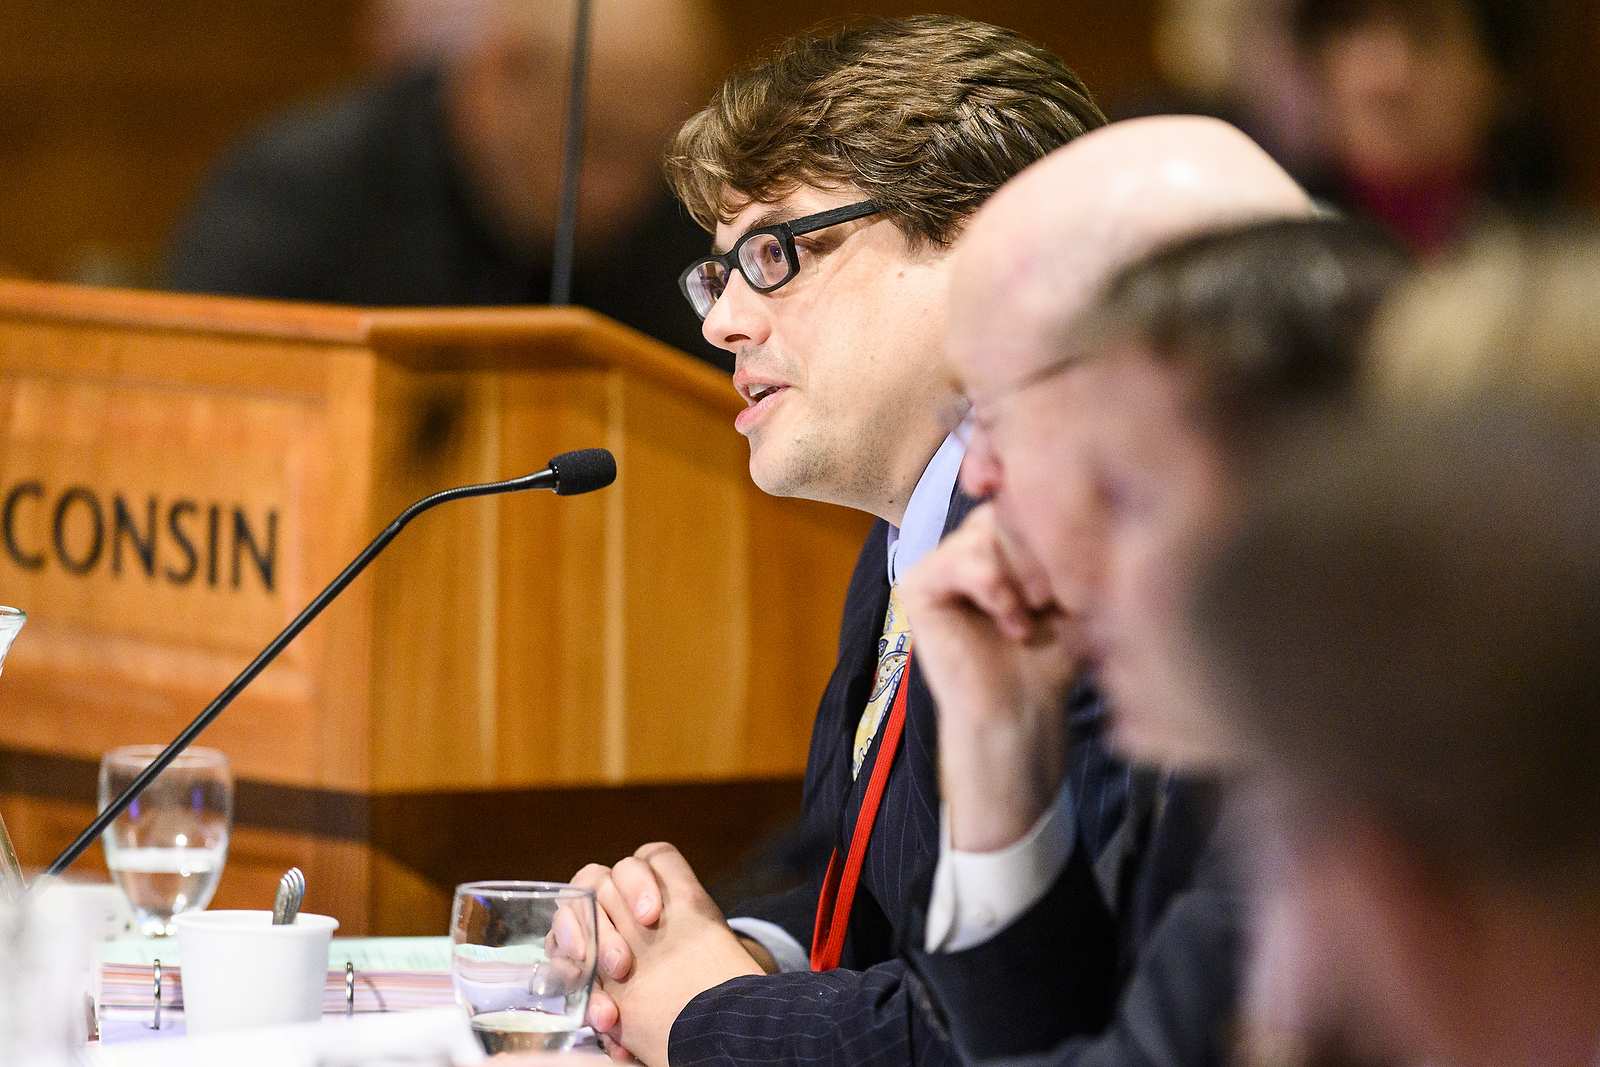 UW System's General Counsel Quinn Williams speaks at the UW System Board of Regents meeting hosted at Union South at the University of Wisconsin-Madison on Feb. 7, 2019. (Photo by Bryce Richter /UW-Madison)